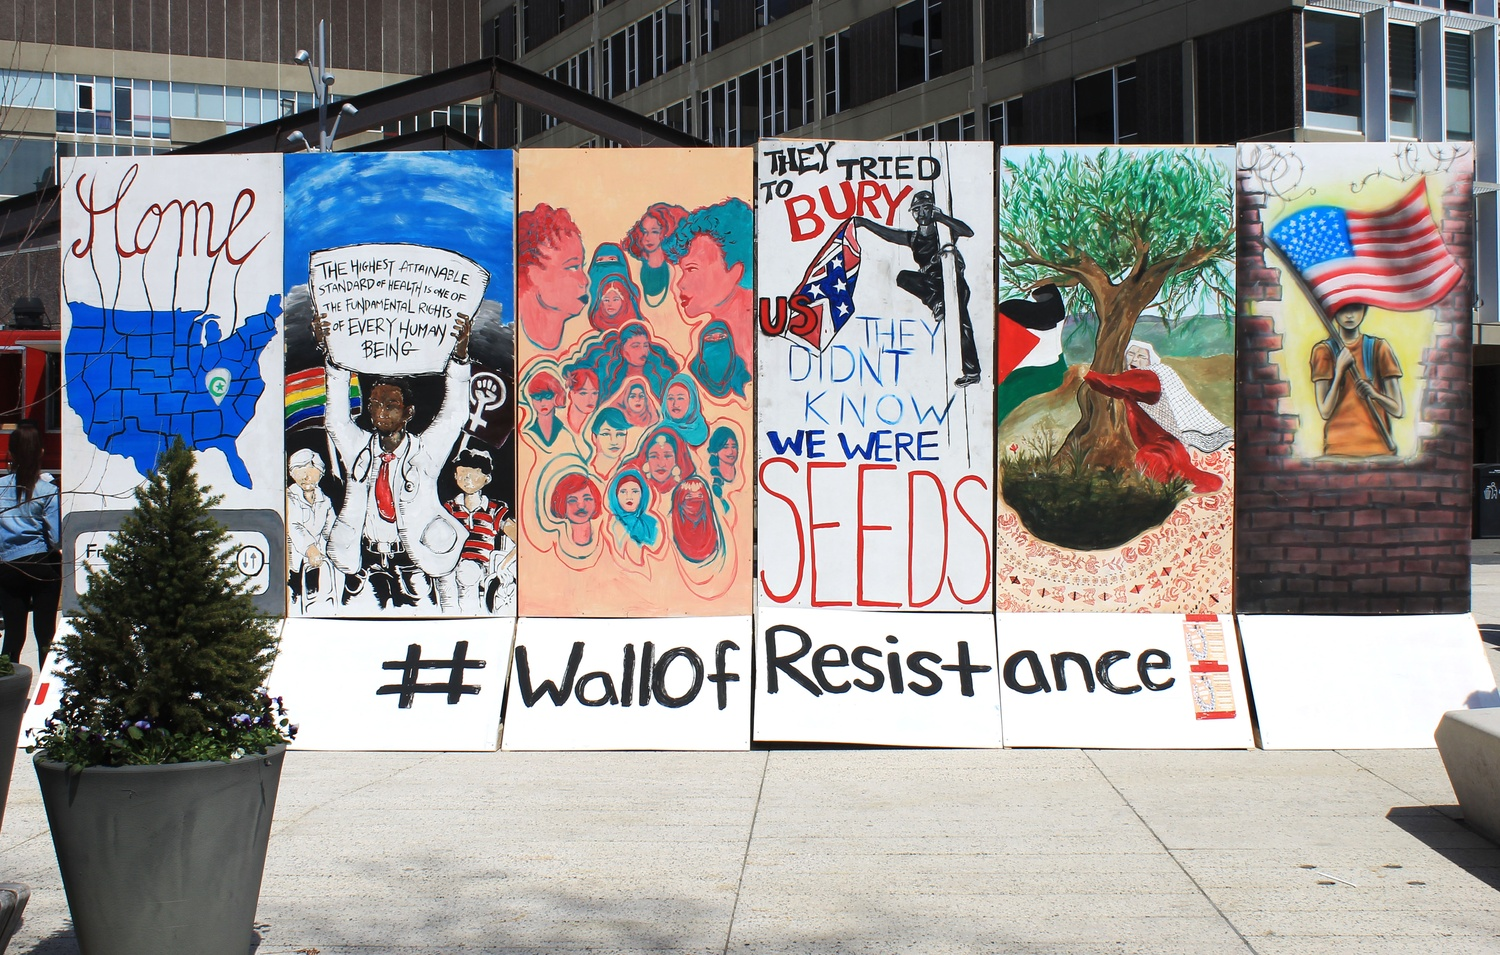 Student activists and artists came together and erected the Wall of Resistance in an act of protest against President Donald Trump's policies.